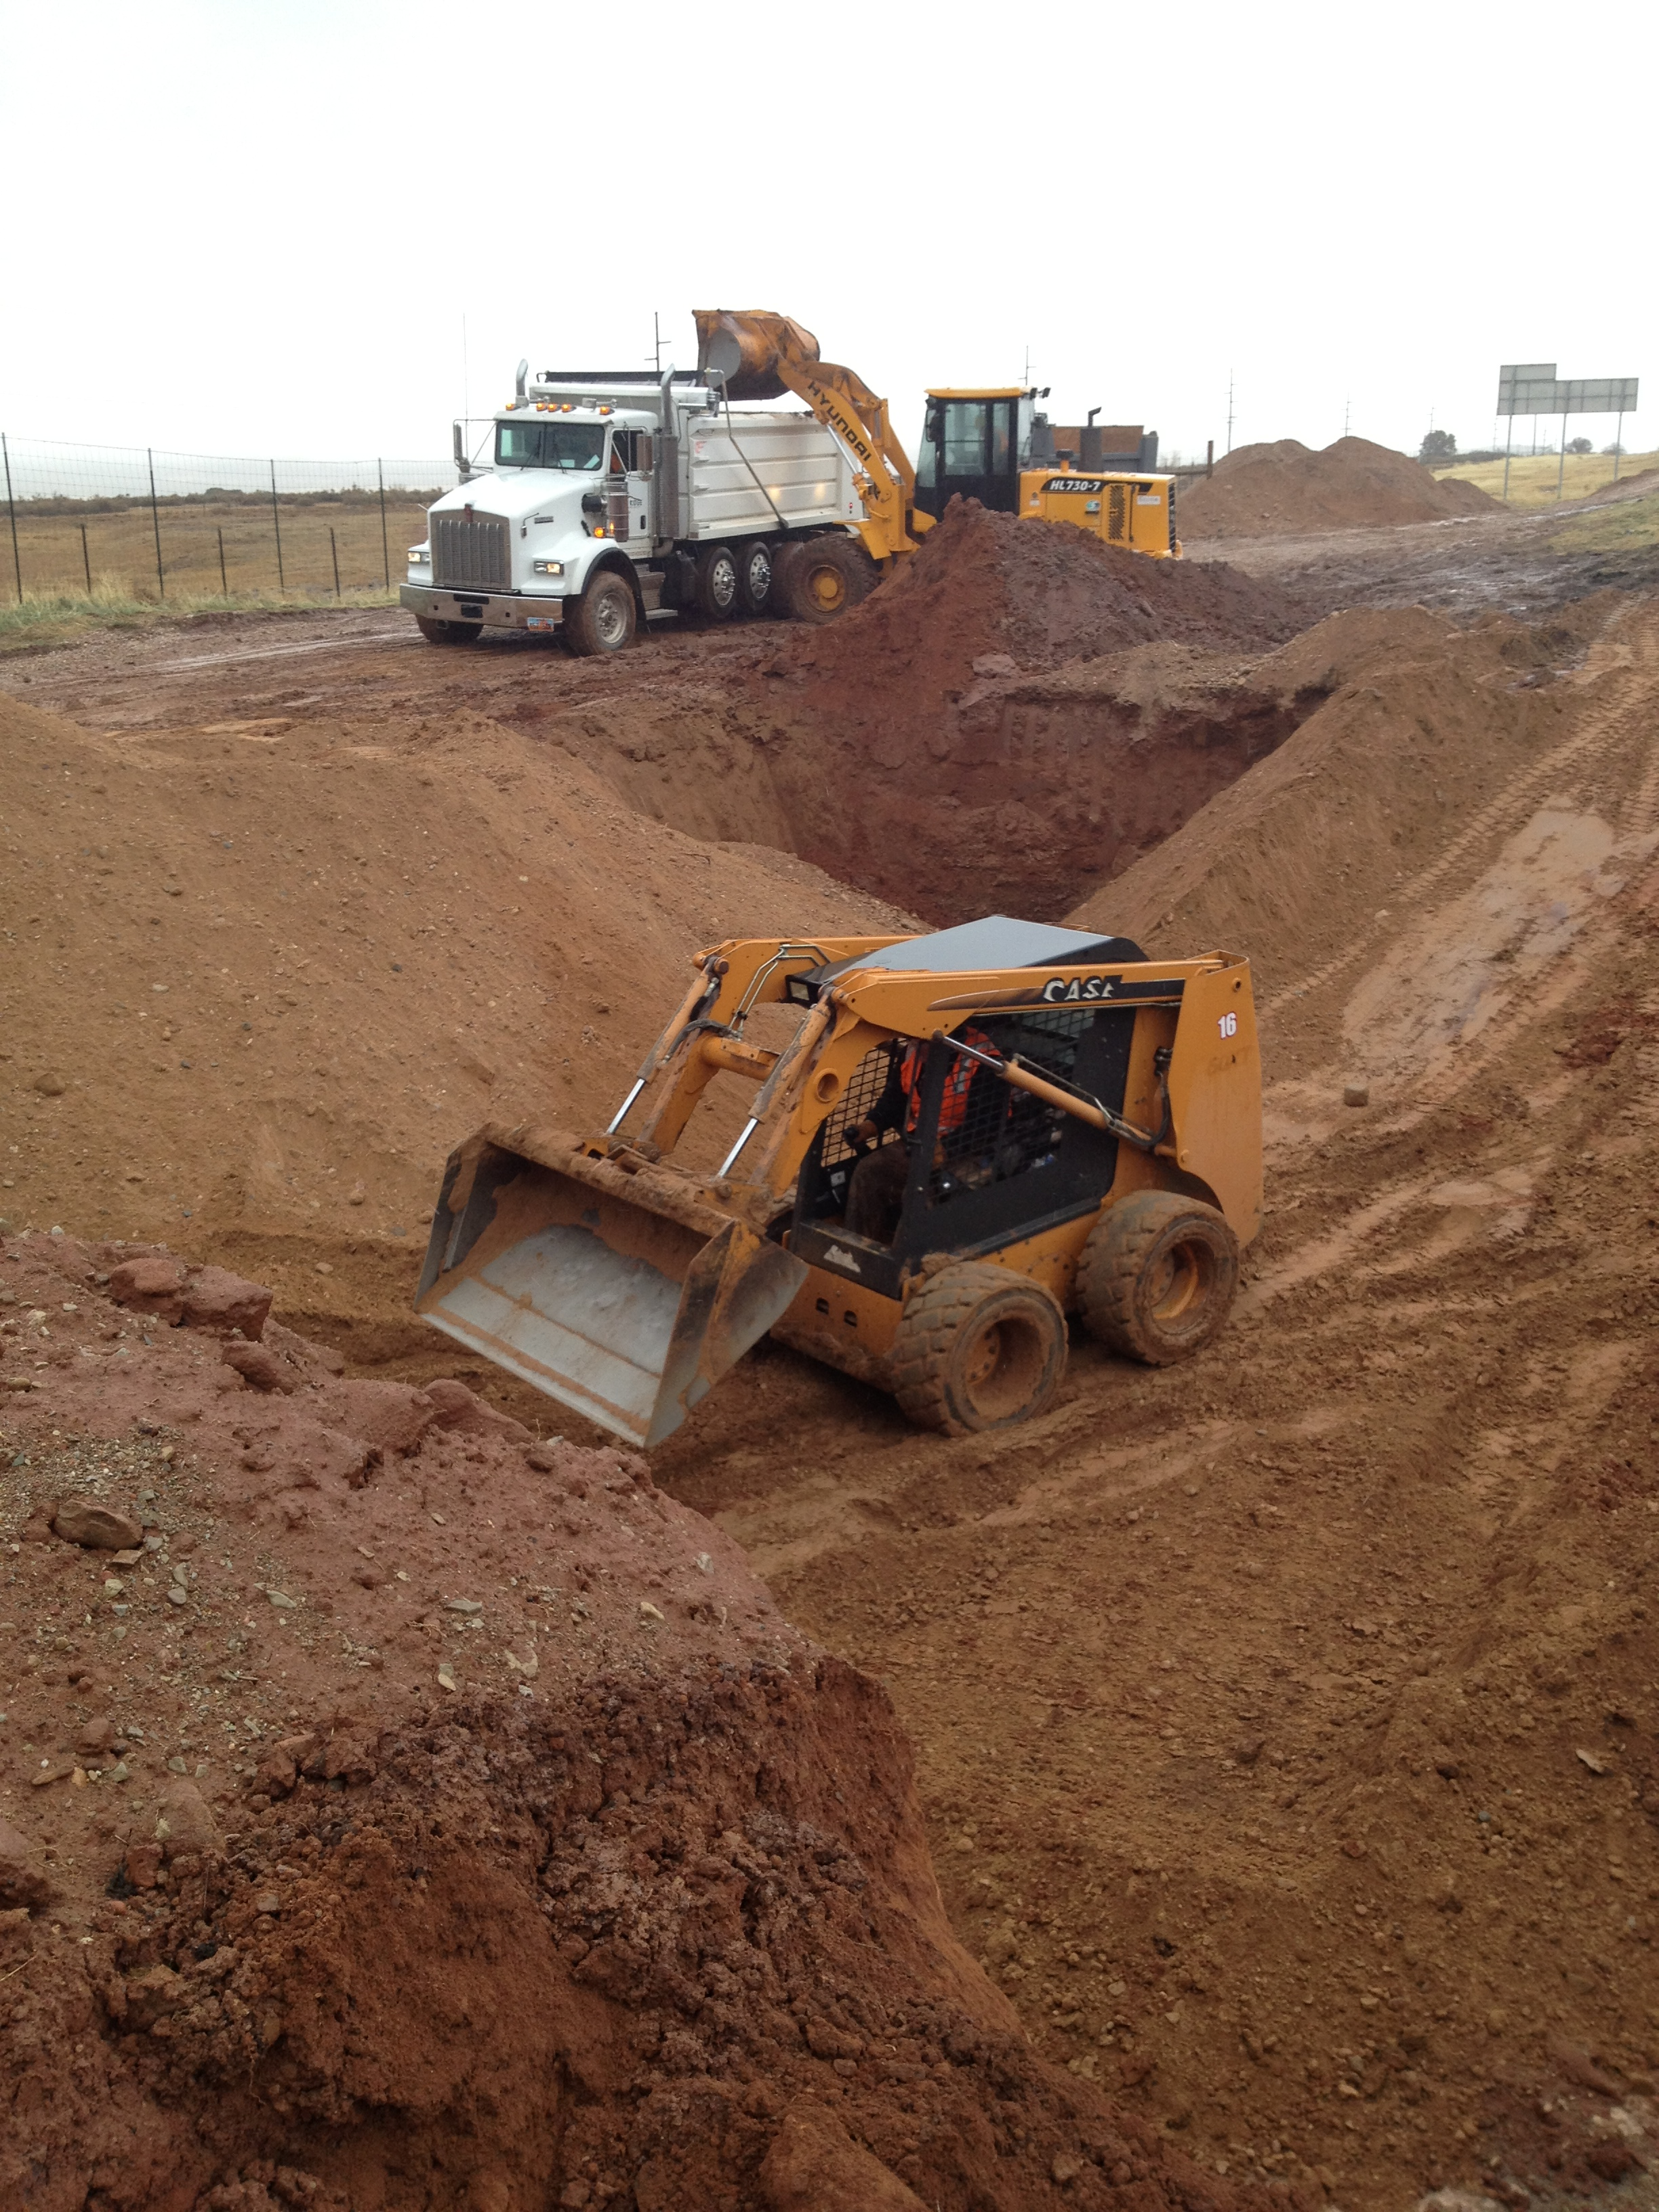 Skid Steer, Dump Truck, Excavation